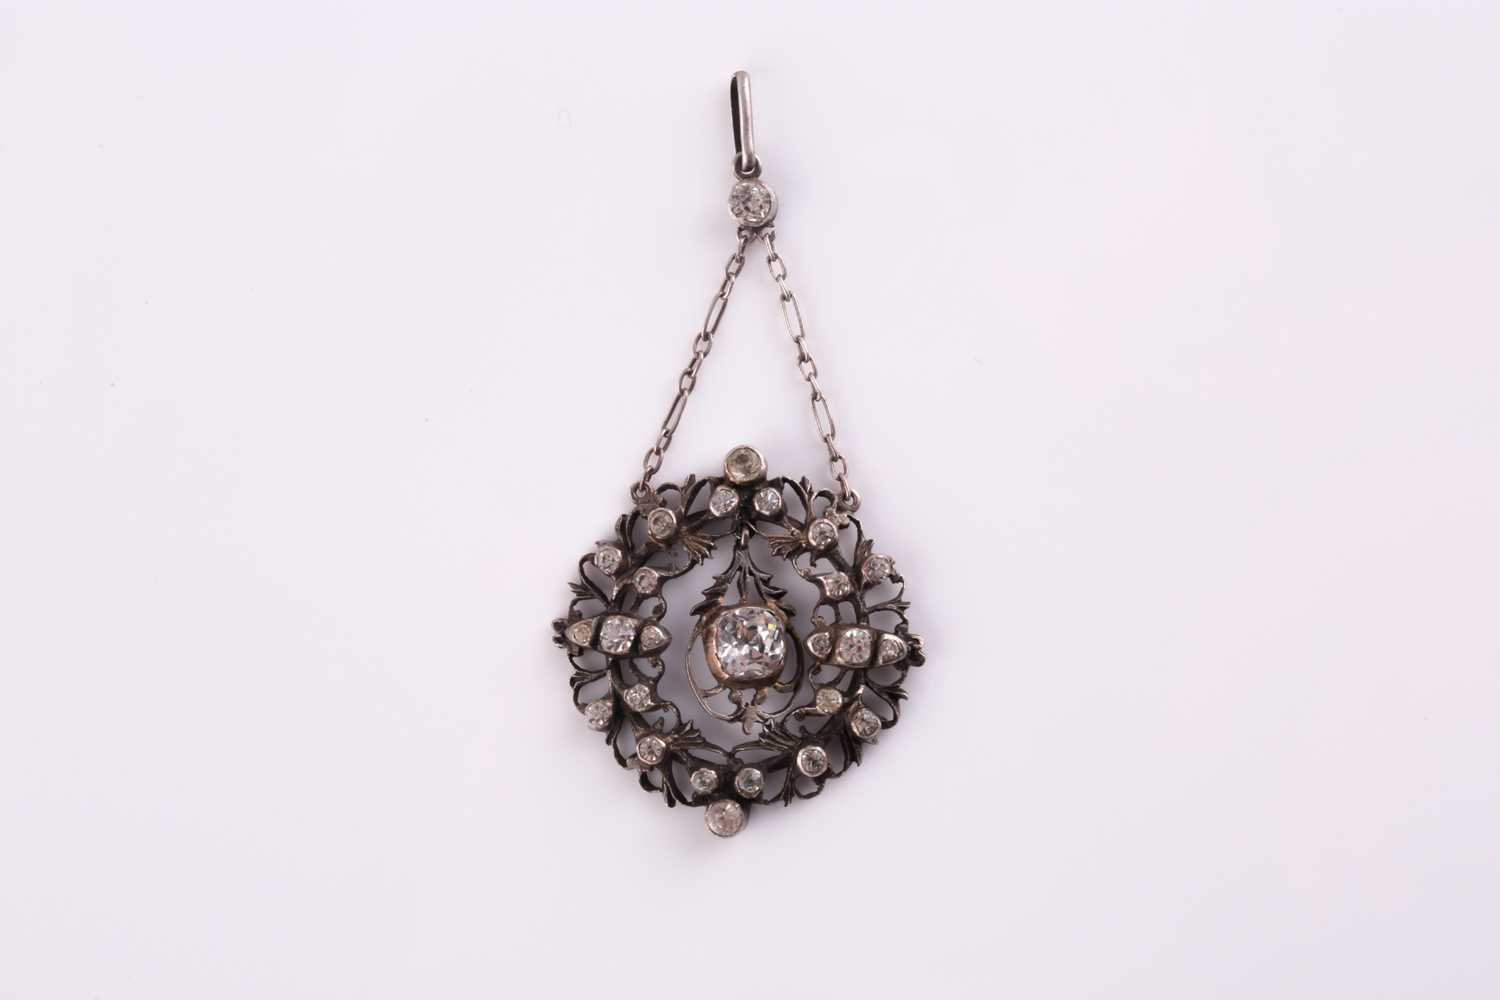 A 19th century white metal and paste pendant, centered with a cushion-cut paste pendant, the